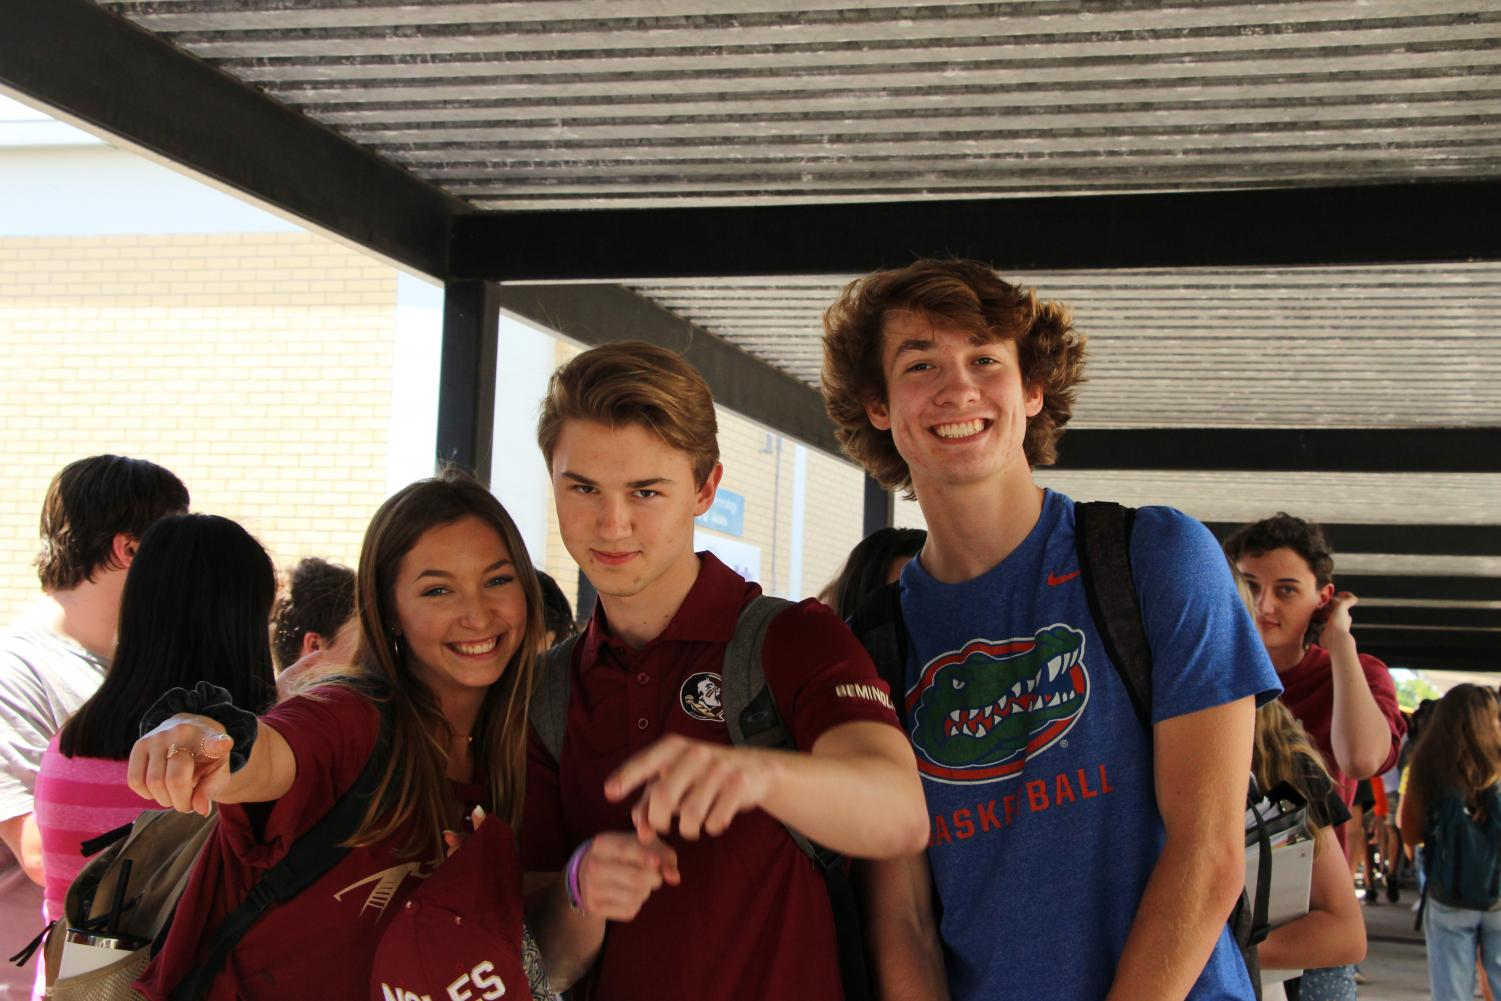 Friends say goodbye as they head to rival schools.